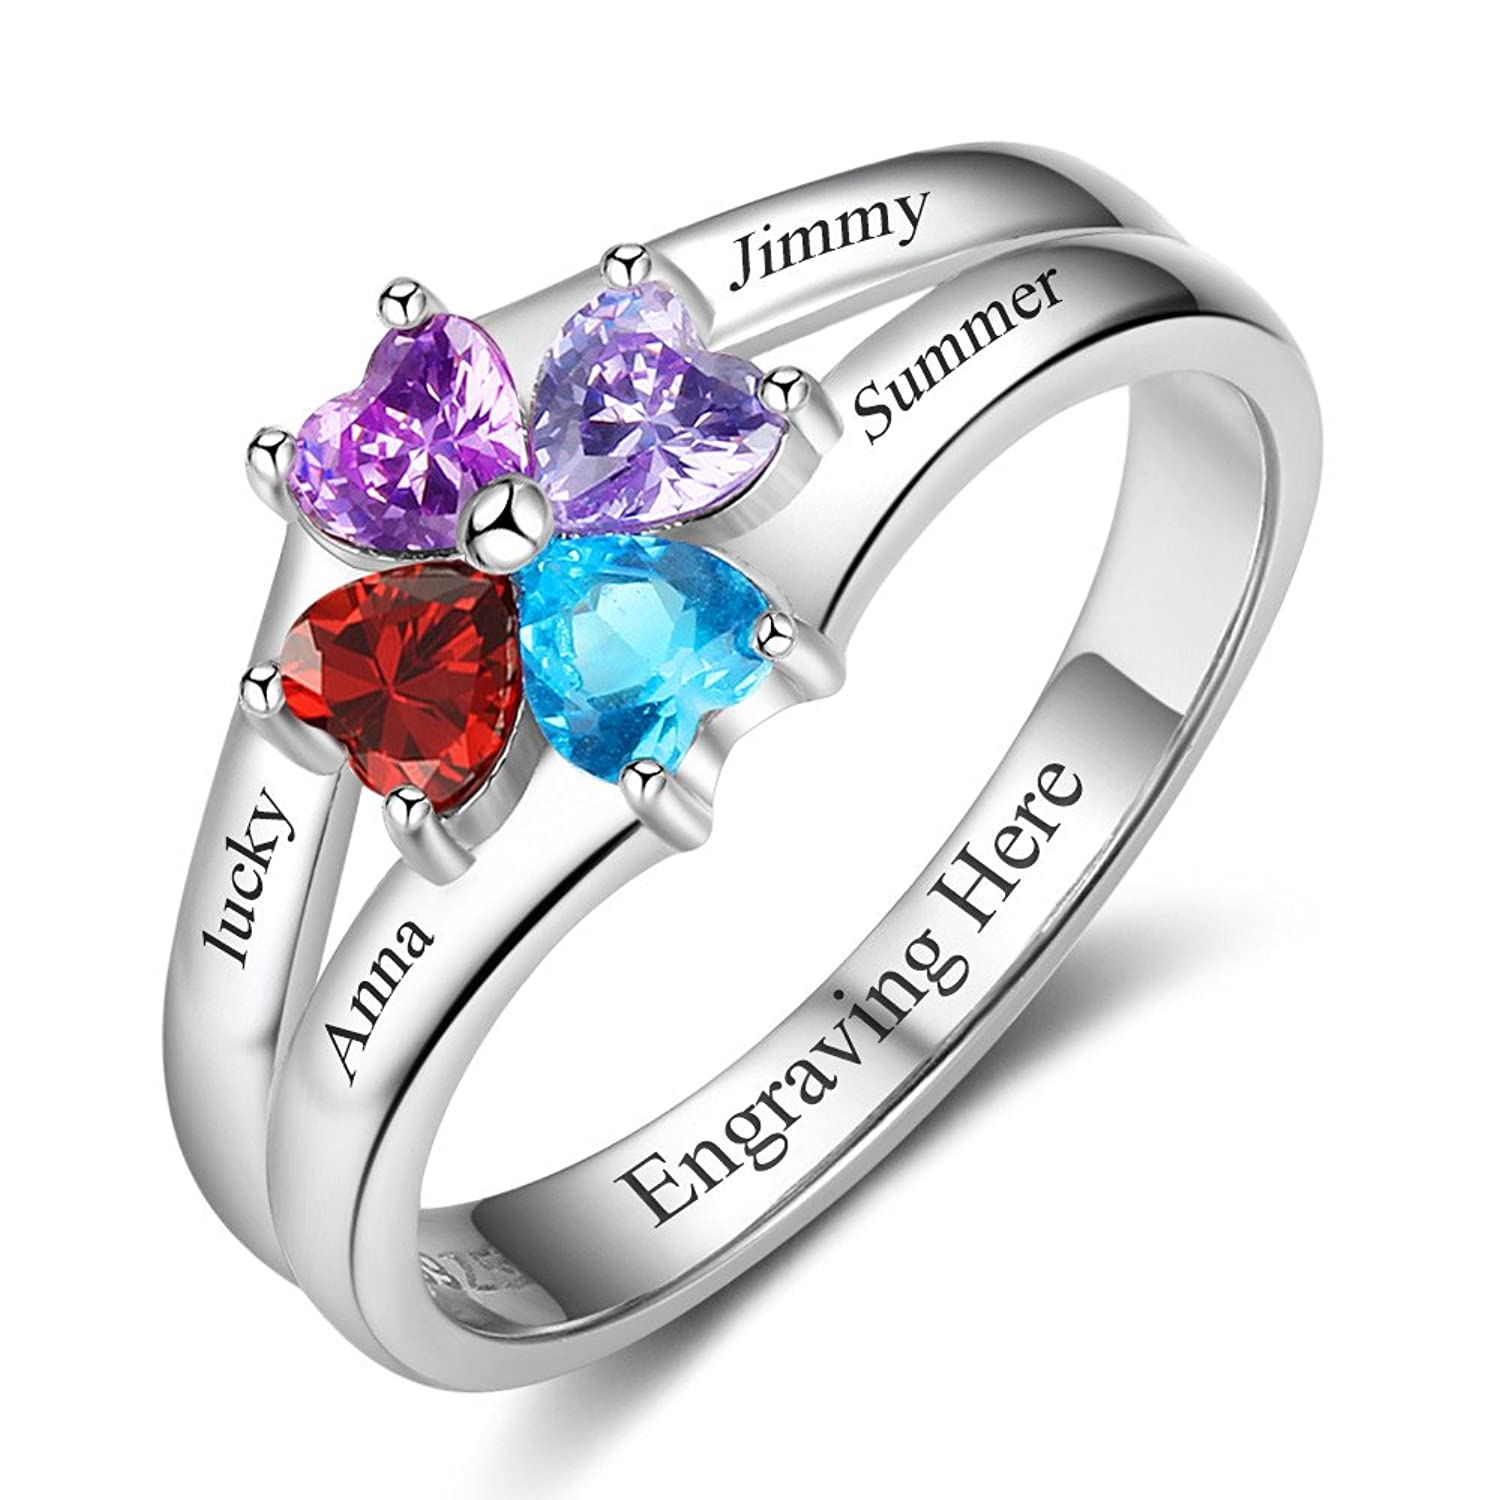 freytags girl archives names name florist laelia baby category rings